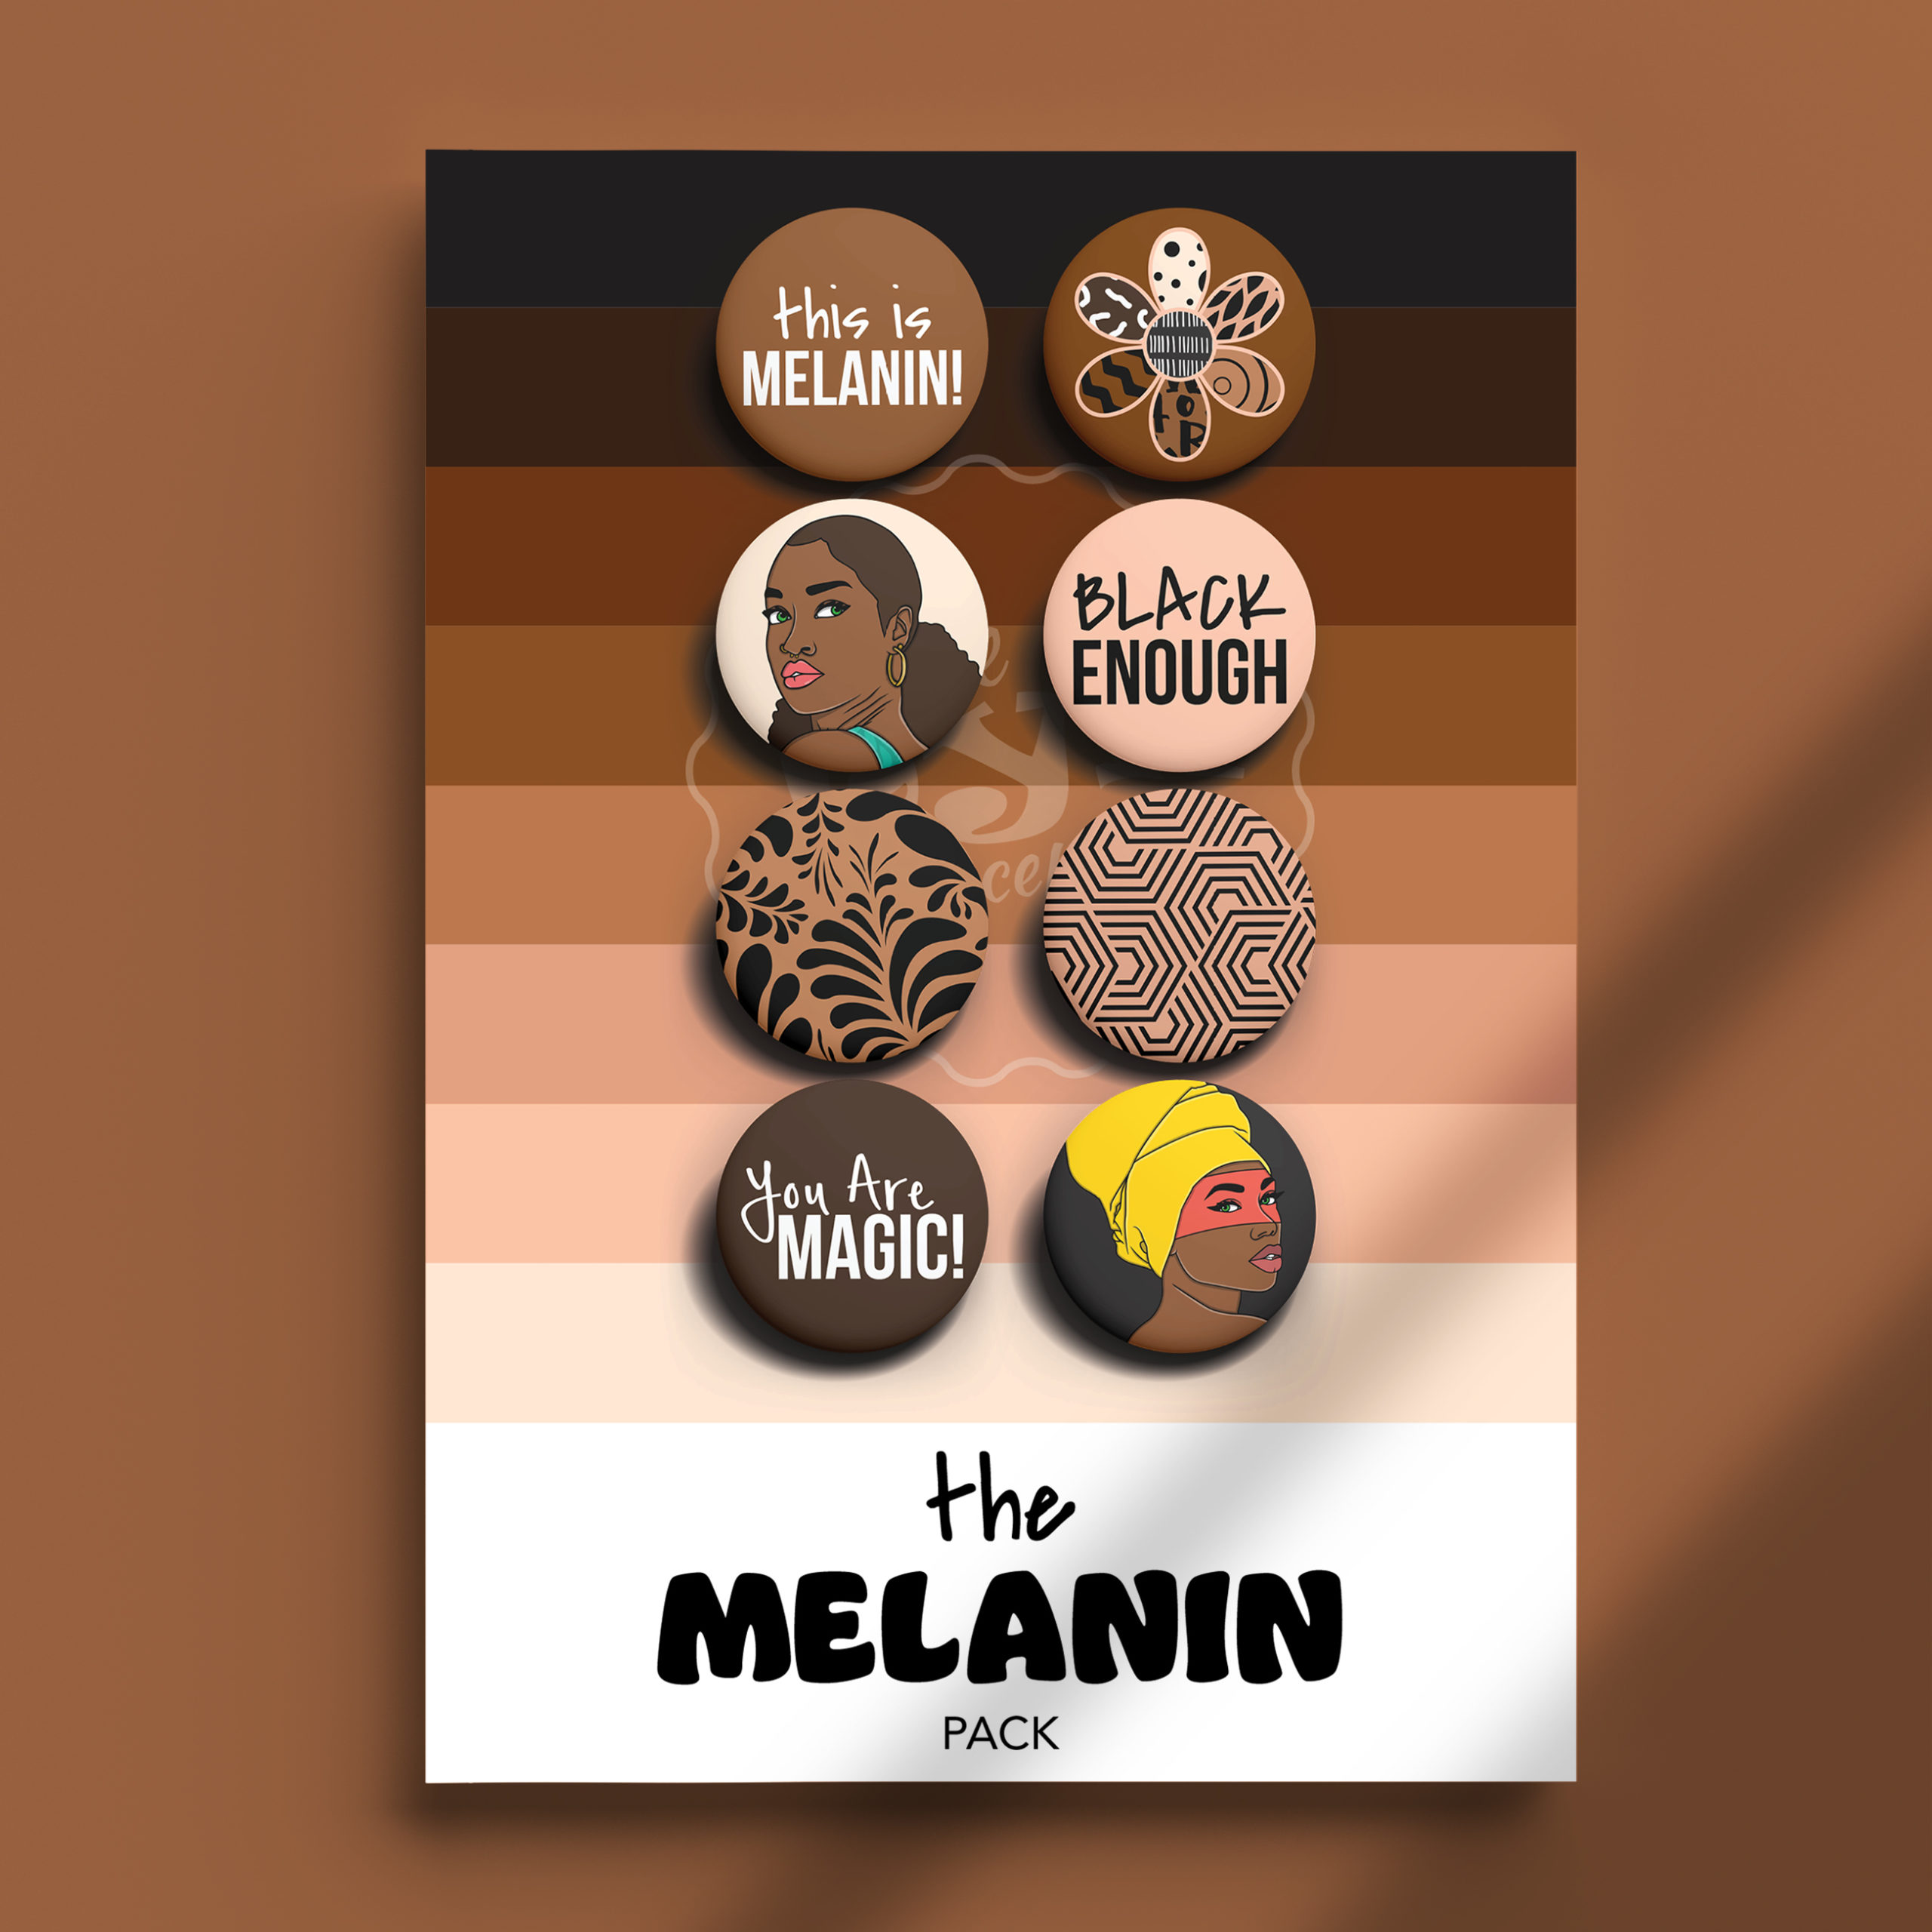 Image of The Melanin Pack pins on package